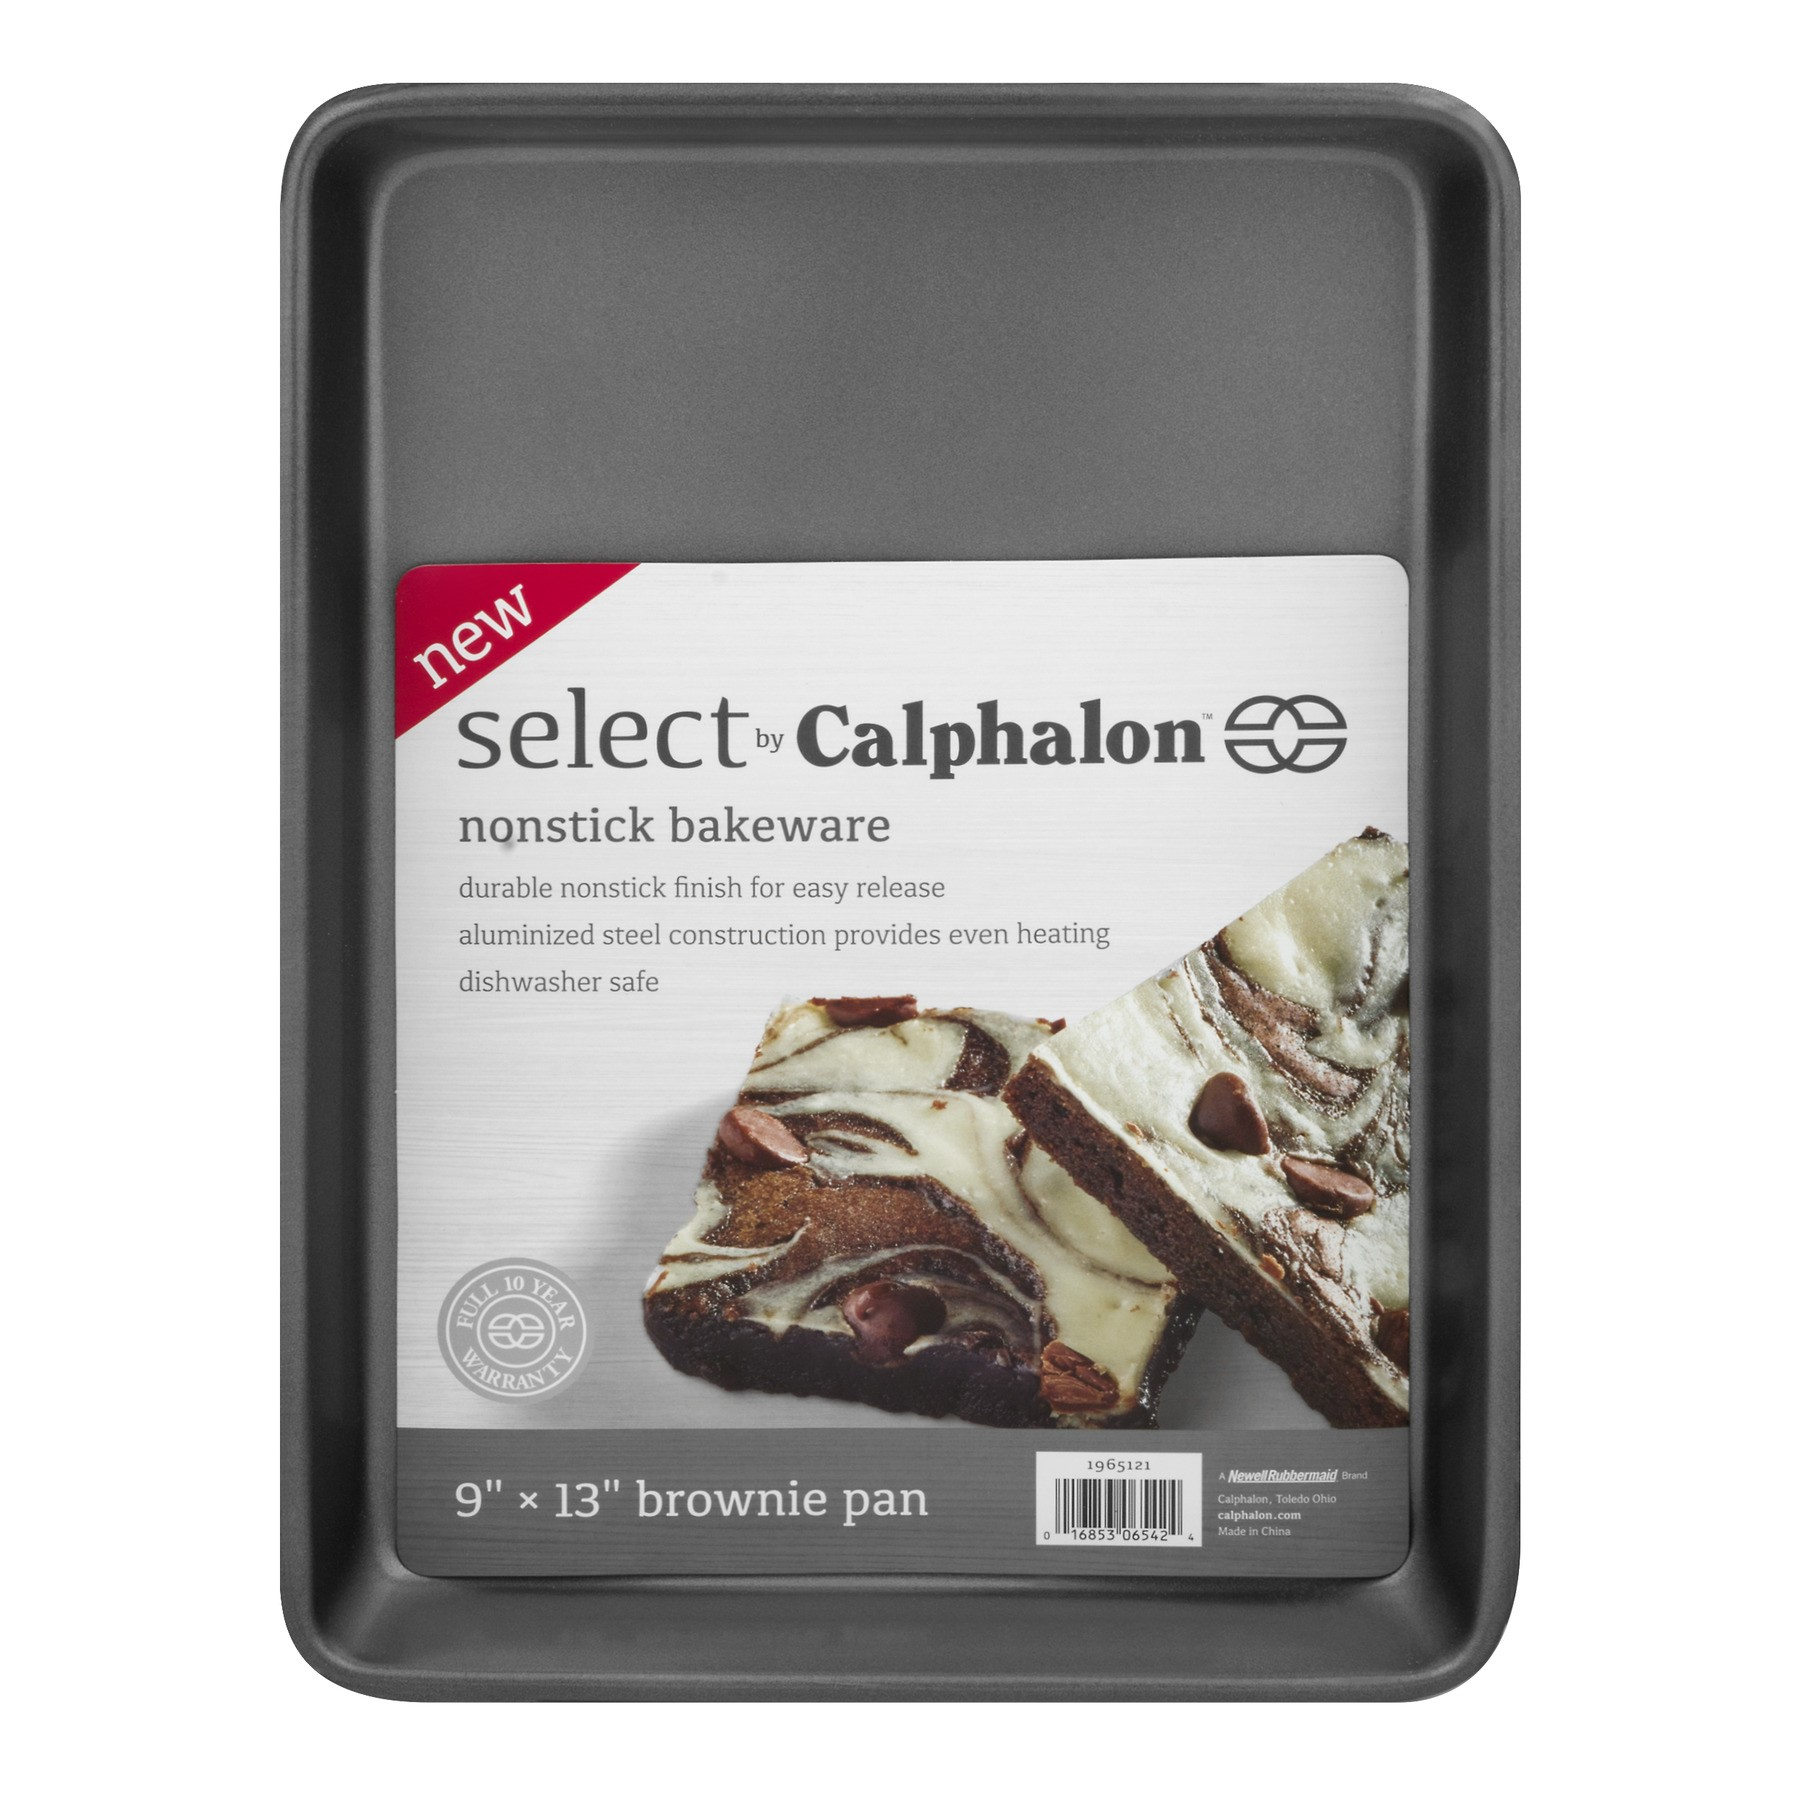 "Select by Calphalon Nonstick Bakeware 9"" x 13"" Brownie Pan, 1.0 CT"